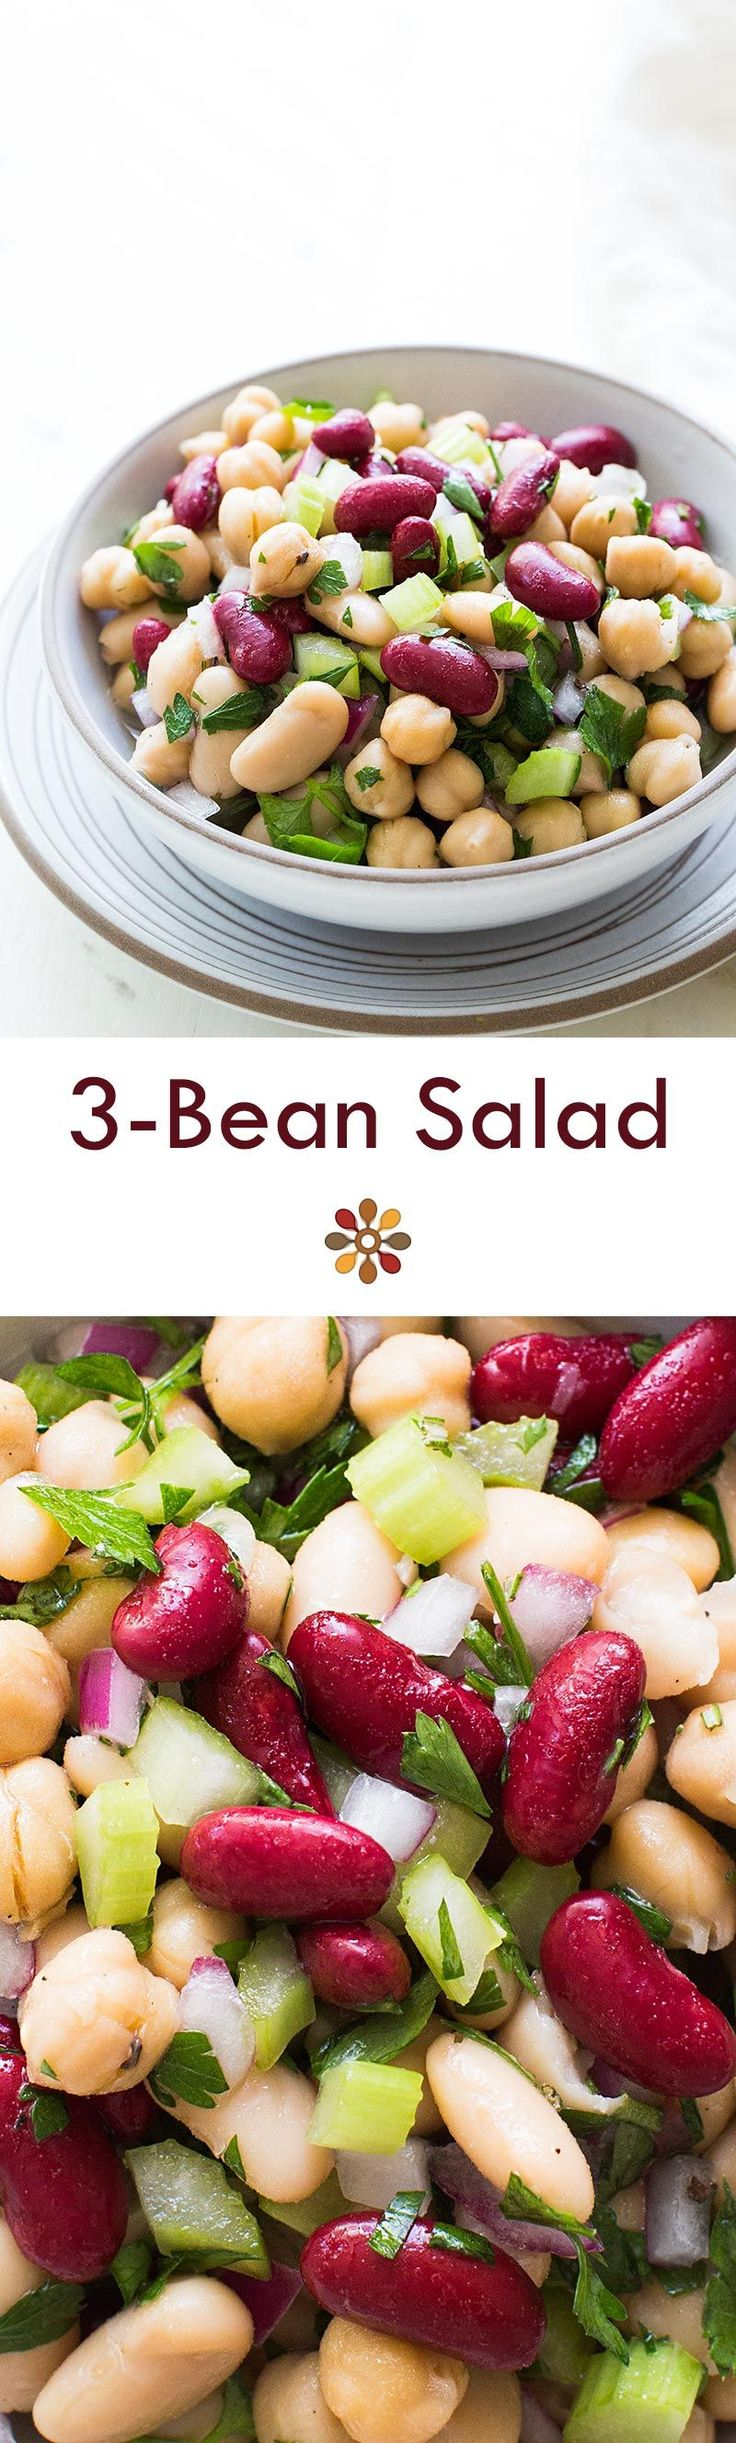 Classic American 3-bean salad, perfect for summer picnics and potlucks! With cannellini beans, kidney beans, garbanzo beans, celery, red onion, parsley, and a sweet and sour dressing. On SimplyRecipes.com #vegan #glutenfree